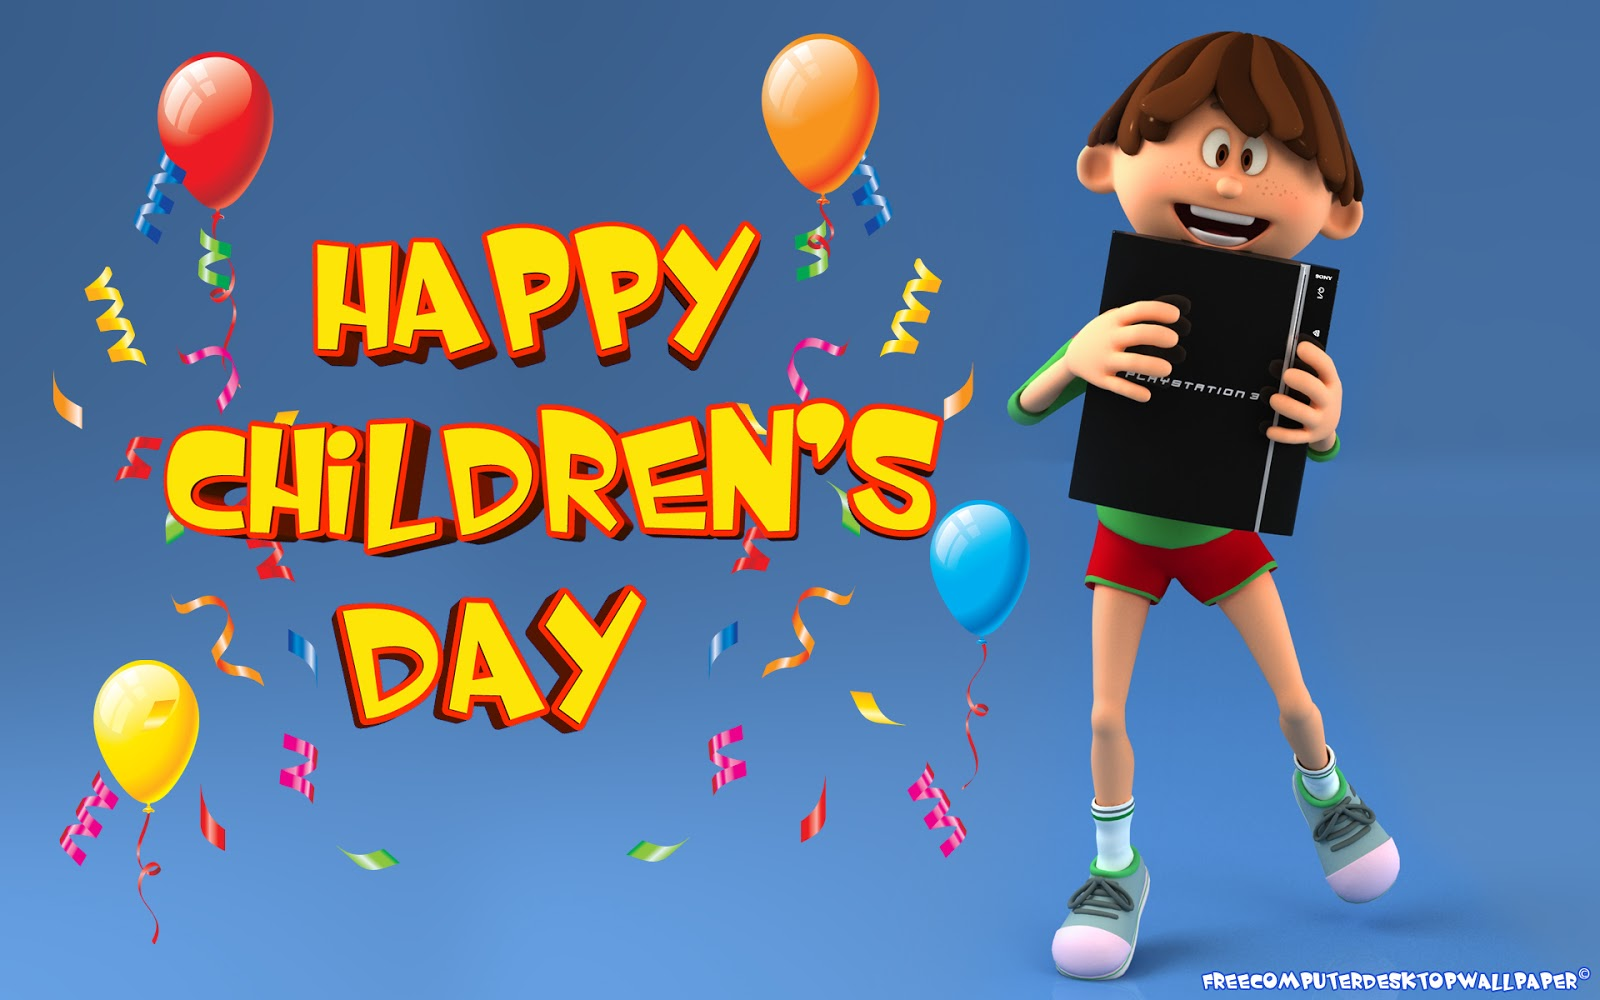 childrens day The facts may 5 is children's day, when families celebrate the healthy growth and happiness of children it became a national holiday in 1948, but it has been a day.